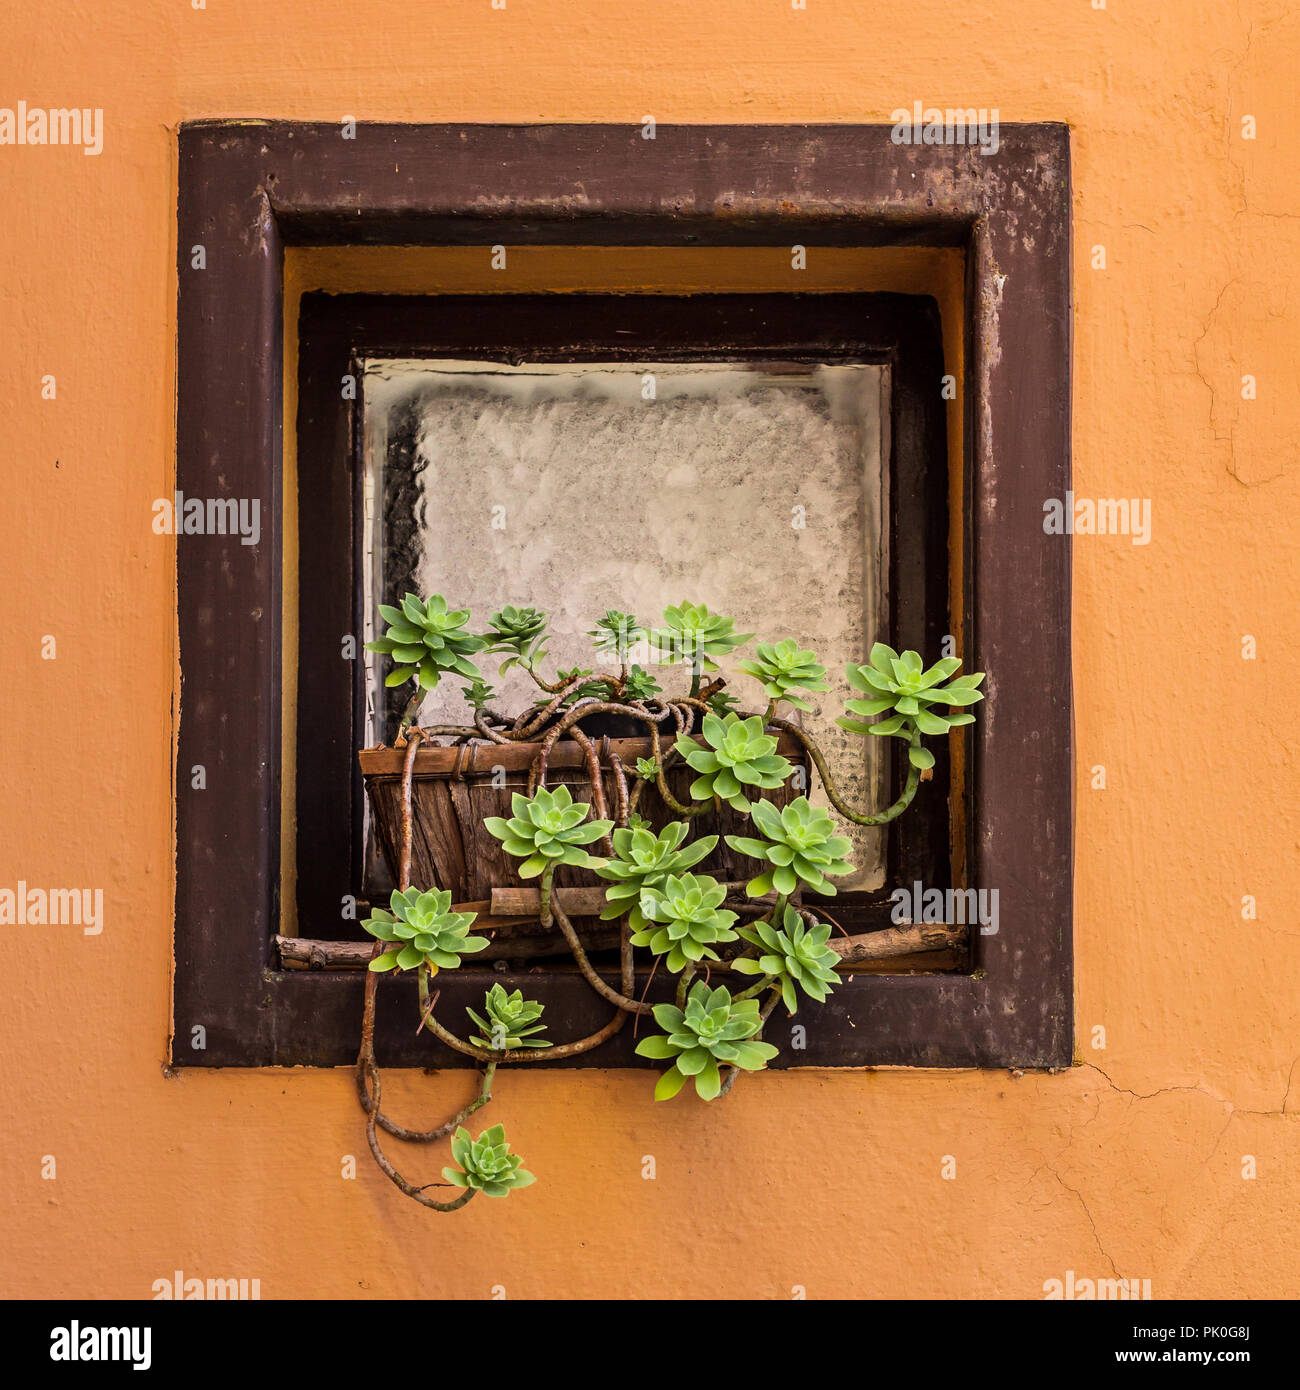 Succulent plant in plant pots on a windowsill - Stock Image